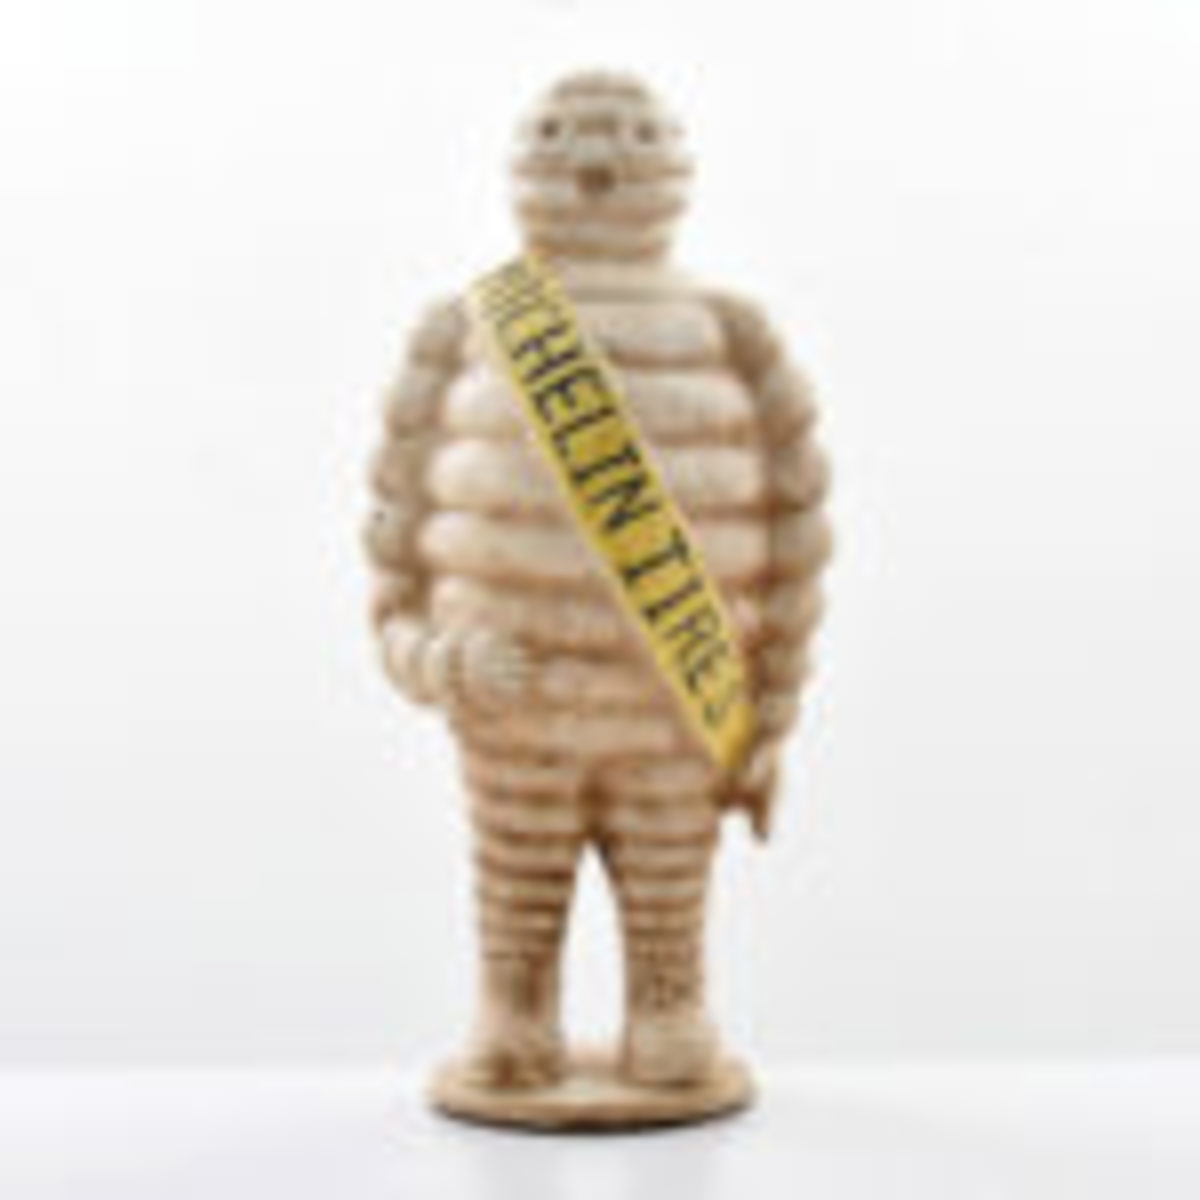 Cast-iron three-dimensional figure of Michelin Tires mascot 'Bibendum,' $2,080.